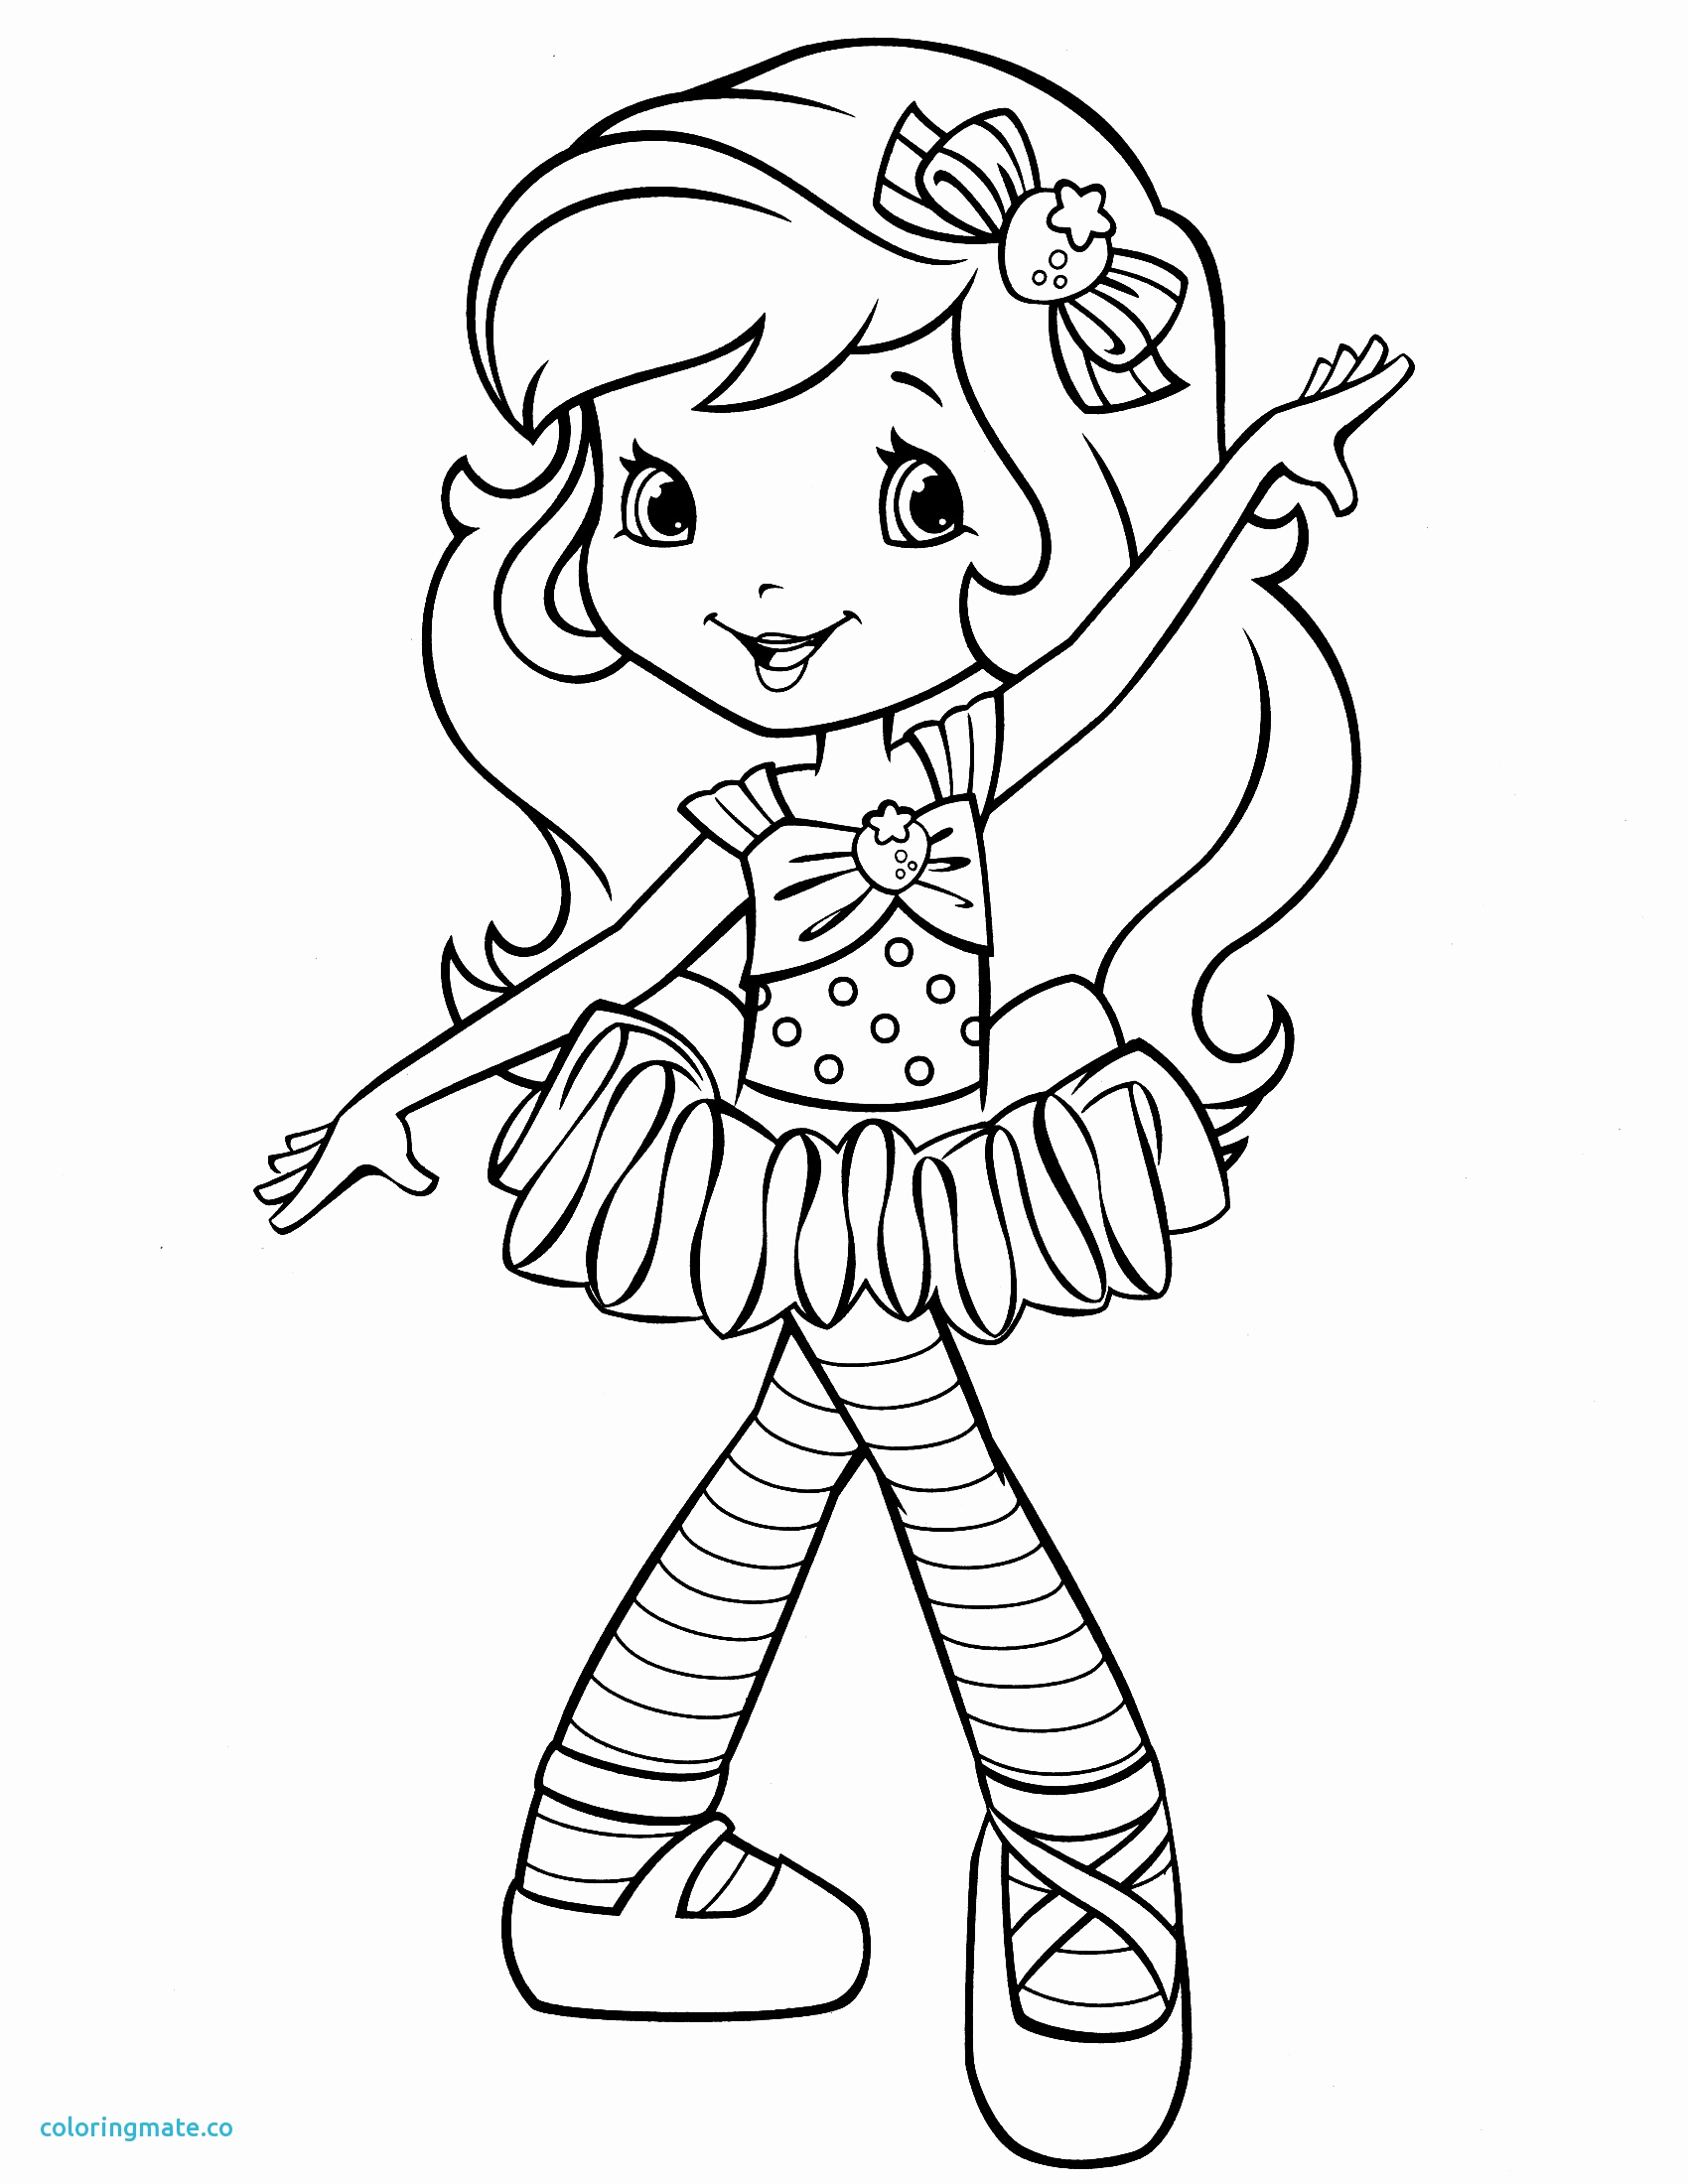 coloring pages of strawberry shortcake strawberry shortcake coloring pages team colors shortcake strawberry of coloring pages